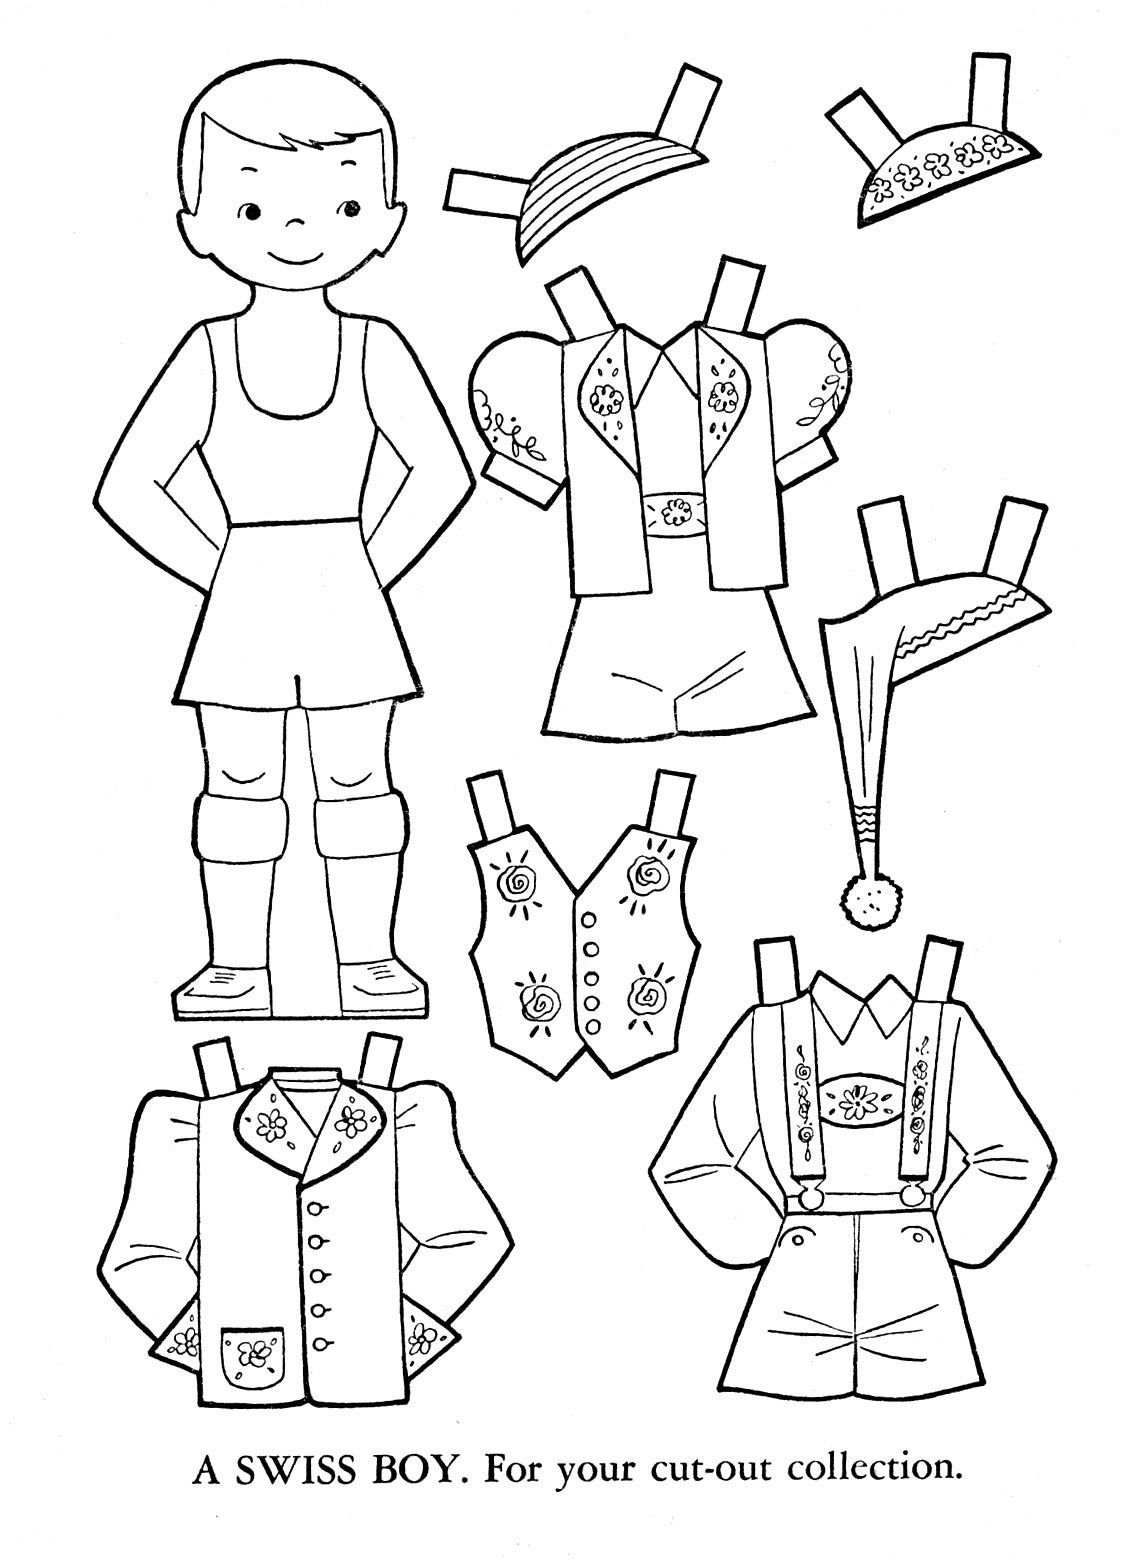 Outlines Of Dress Up Dolls Different Colountries